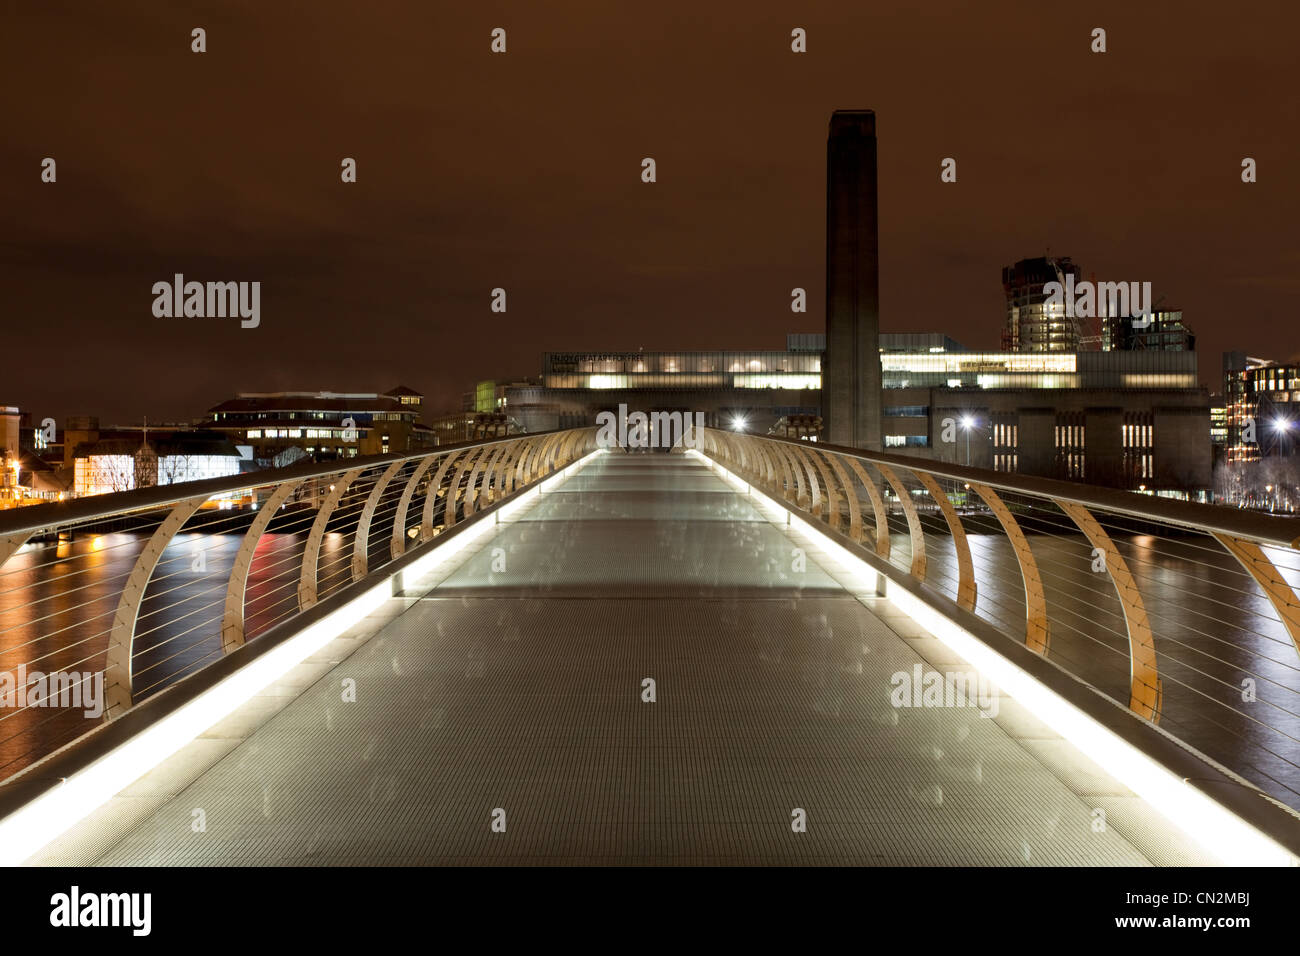 Millennium Bridge in Richtung Tate Modern, London, UK Stockbild